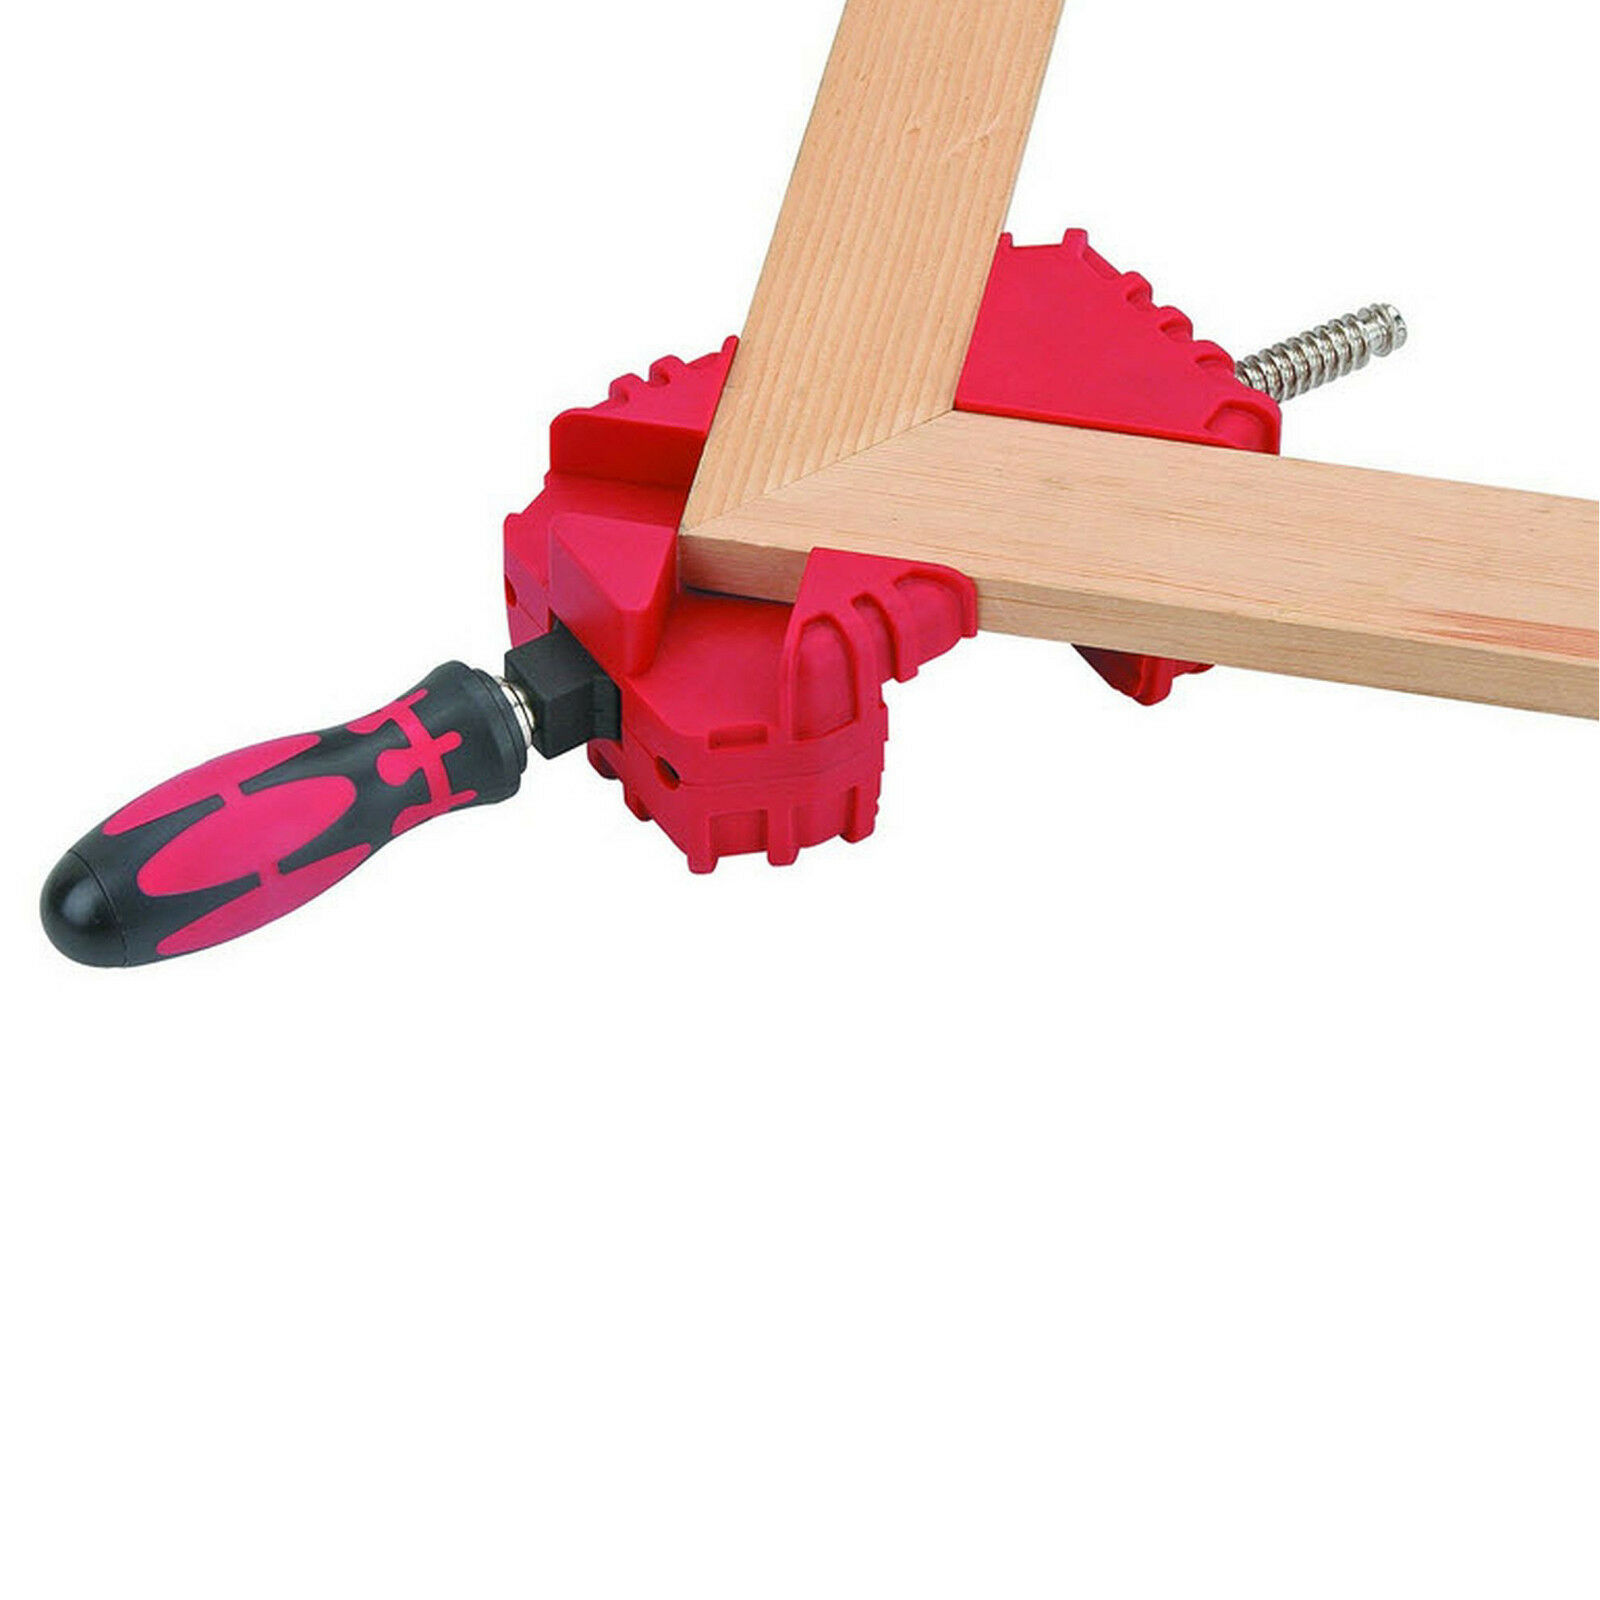 """4 Set of New 3/"""" Miter Corner Clamp picture frame Clamp BarJoints 90 Degree"""